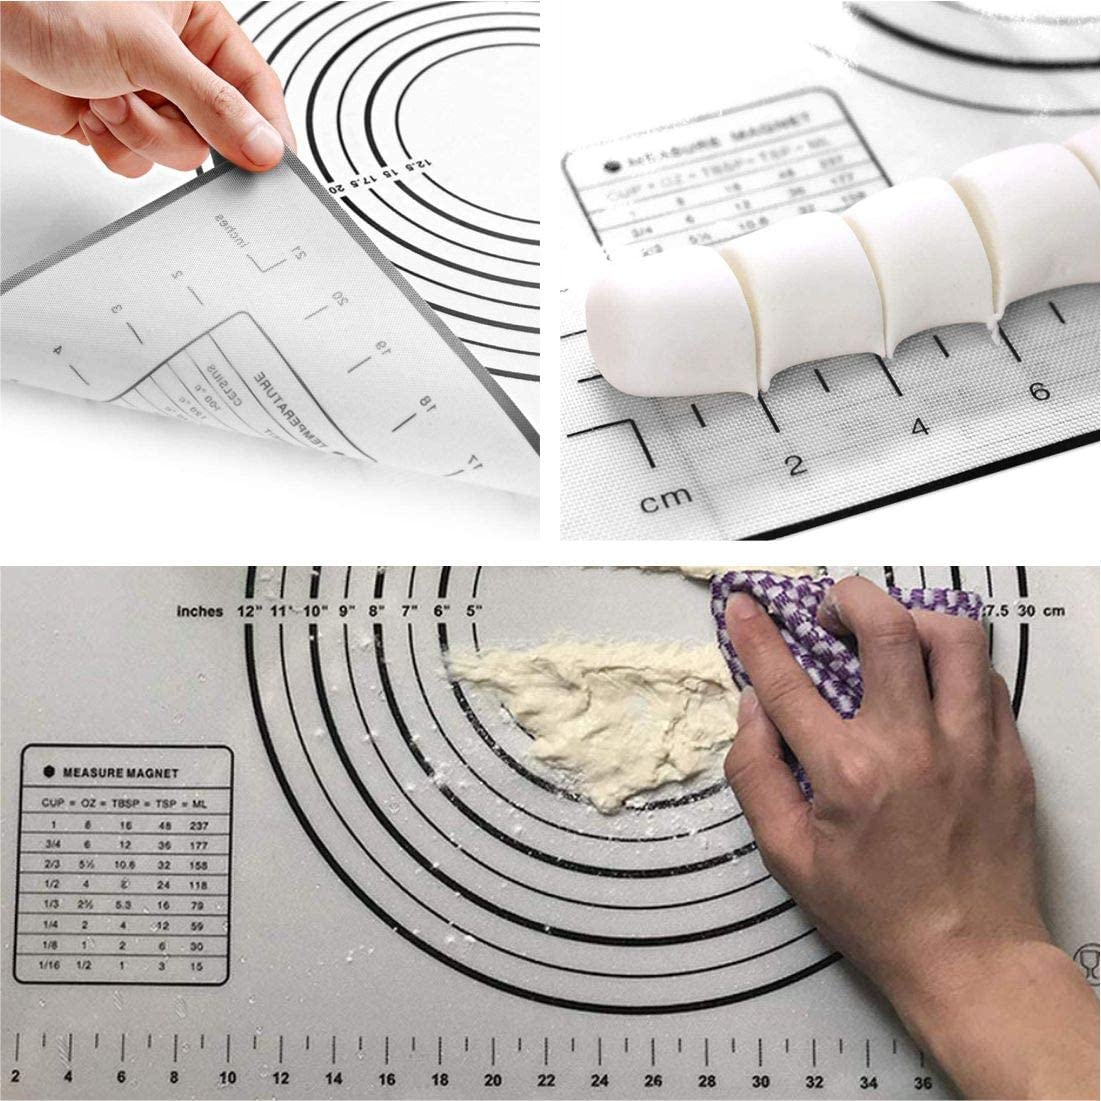 24 in Covotna Silicone Pastry Mat and Rolling Pin Set with Measurements Non-Slip mat for Baking Dough Rolling Mat Cookie Fondant Pastry Pizza Pie 16